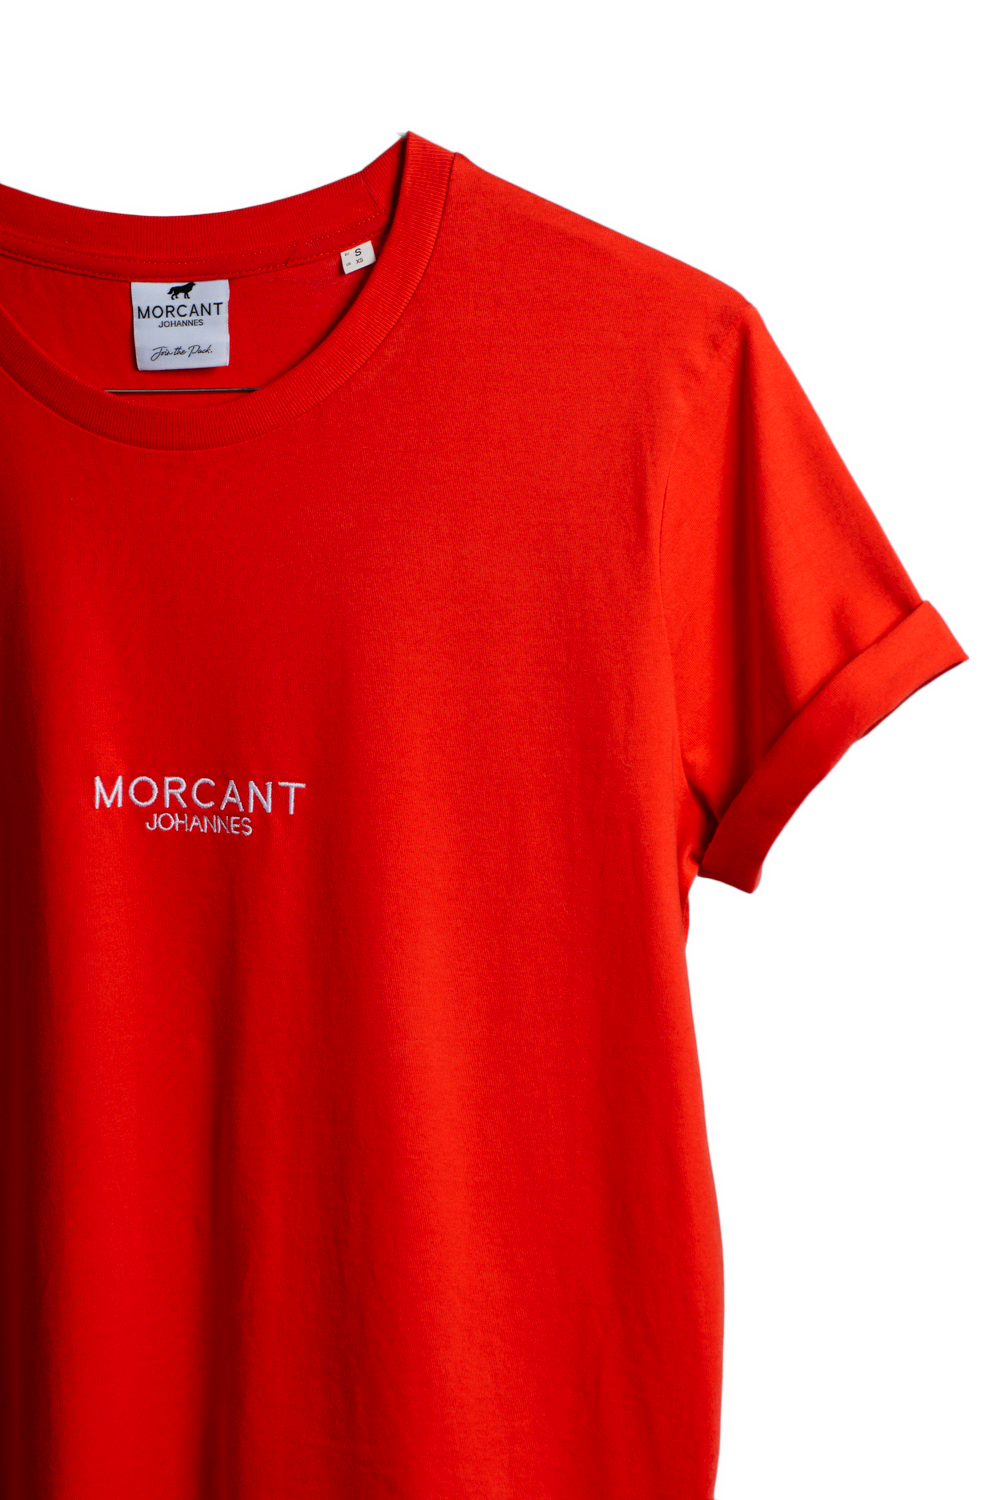 Detail image of our red organic Morcant t-shirt, displaying the right hand silhouette of the brightly coloured garment.